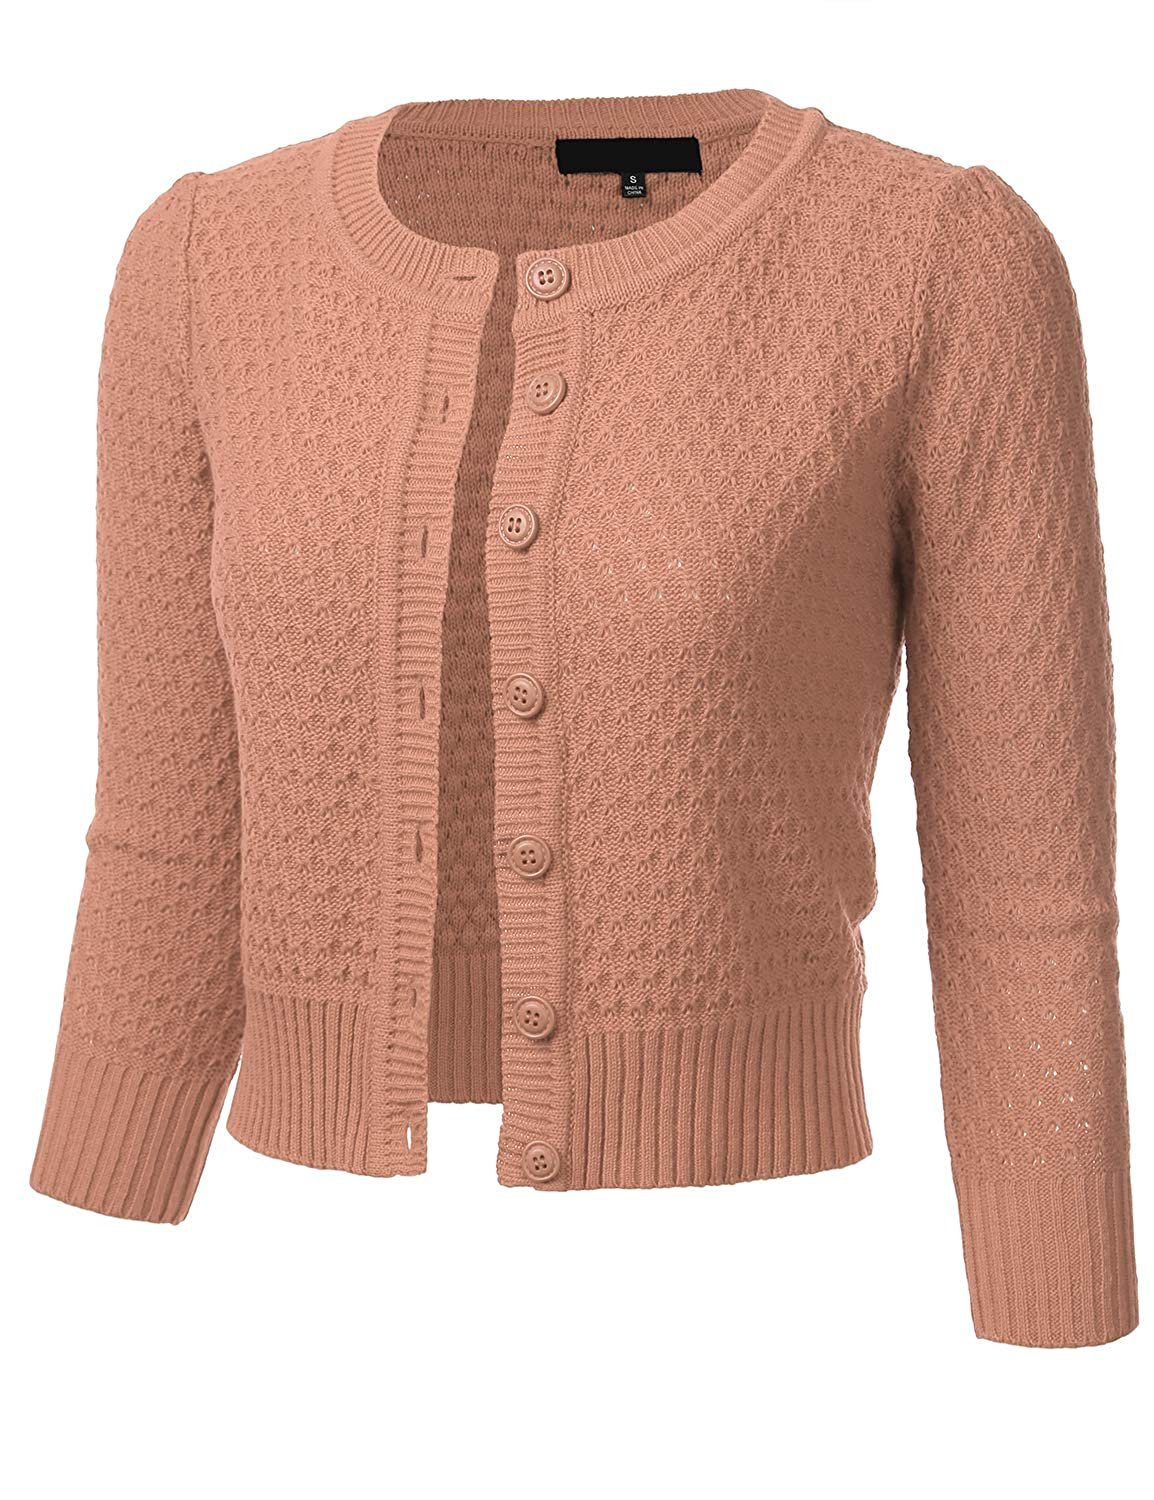 1930s Style Sweaters | Vintage Sweaters FLORIA Womens Button Down 3/4 Sleeve Crew Neck Cotton Knit Cropped Cardigan Sweater (S-3X) $25.99 AT vintagedancer.com